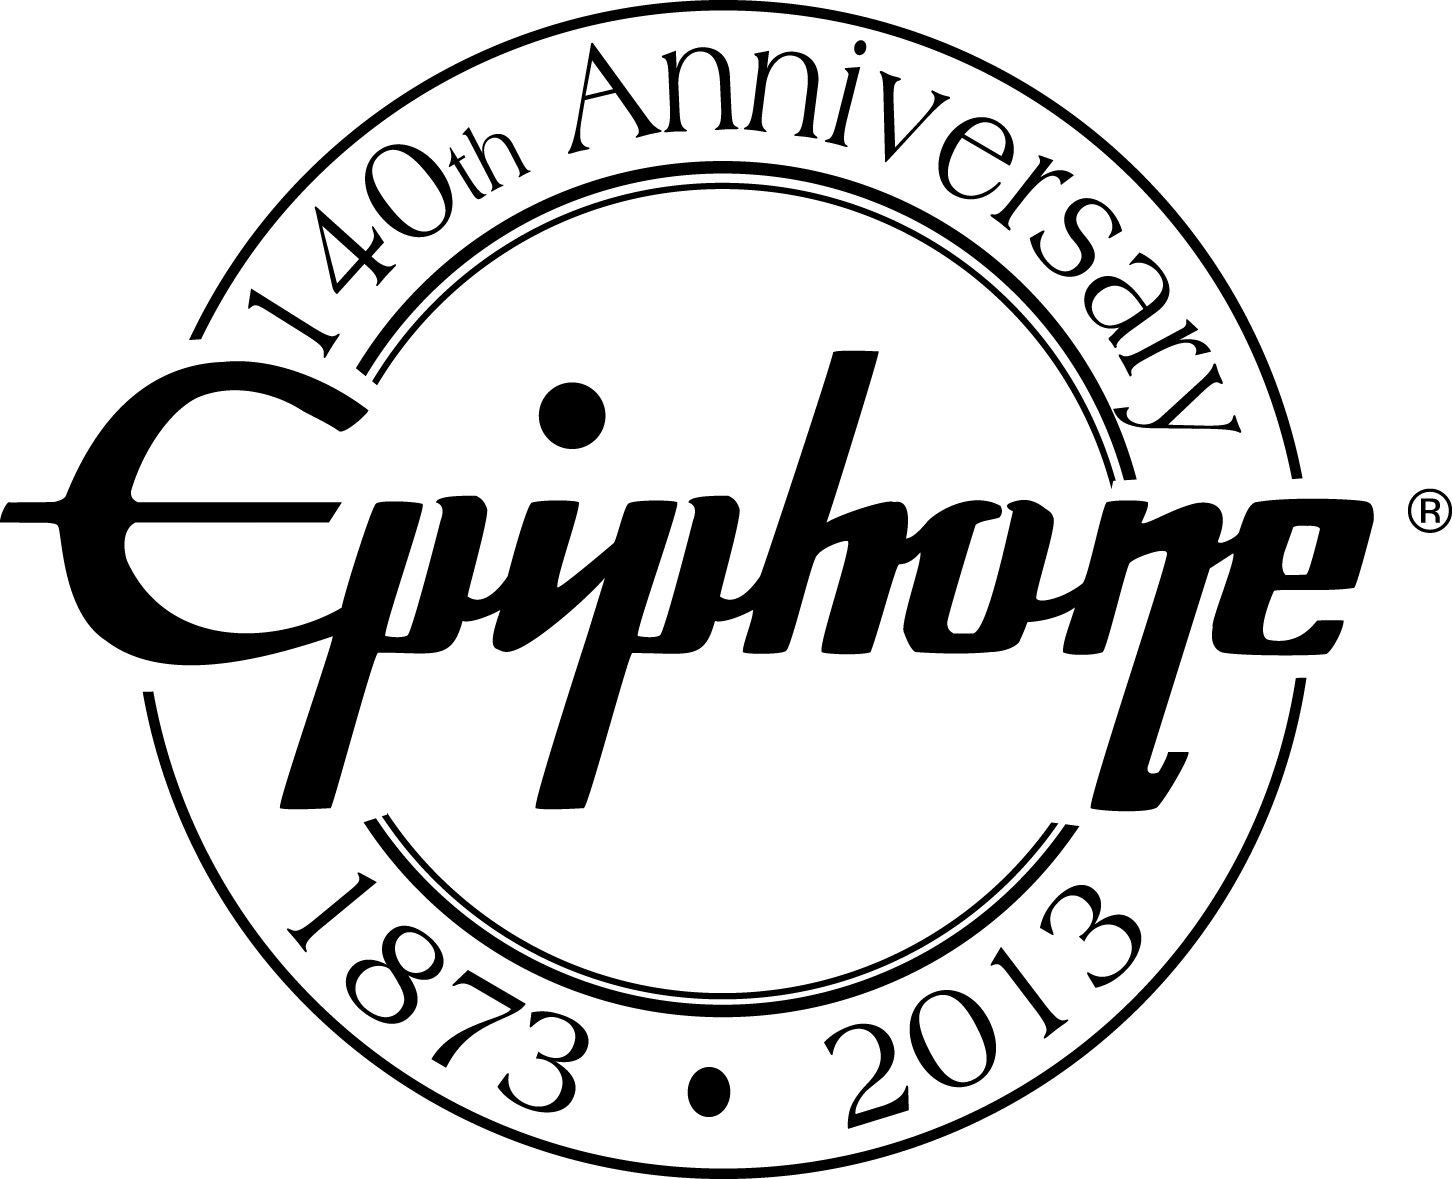 Epiphone Announces Bloodstock Live Music Journalist and Photo Competitions